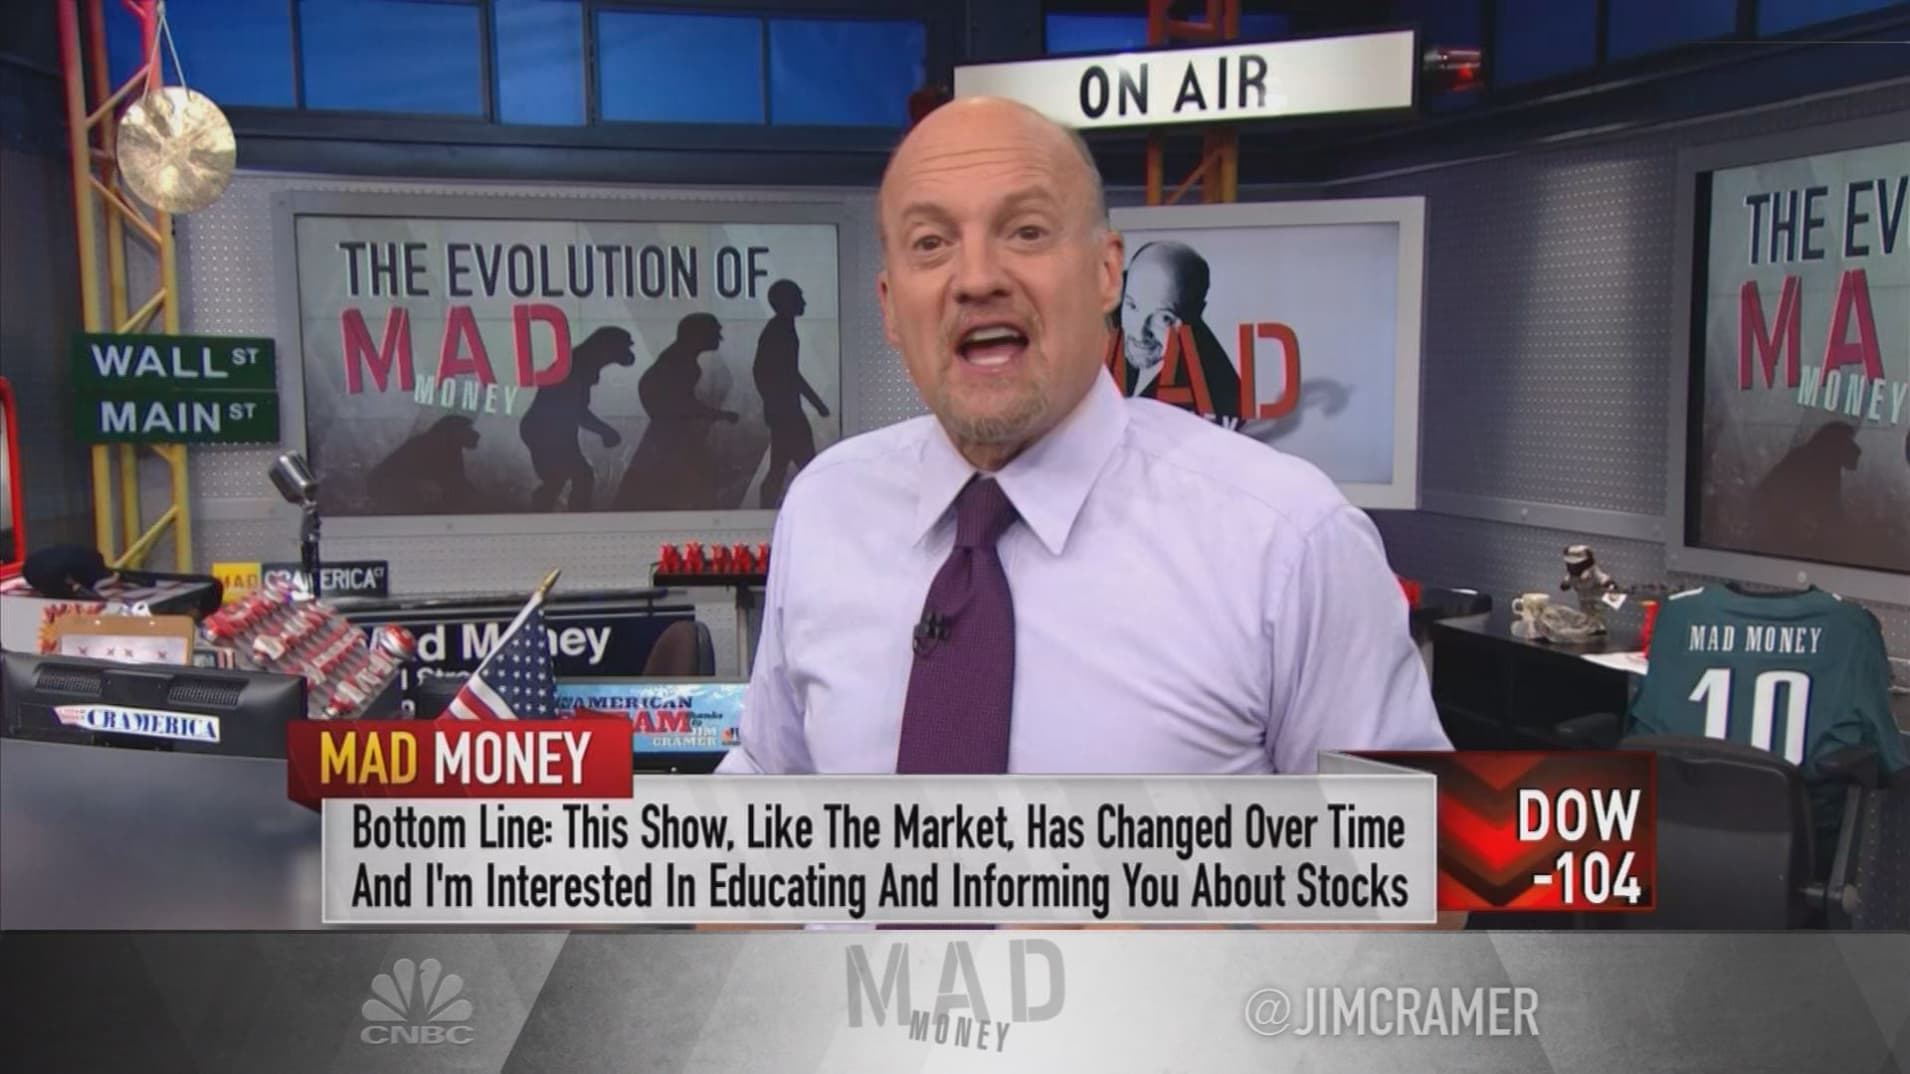 From stock picking to stock educating: The evolution of Jim Cramer's 'Mad Money'